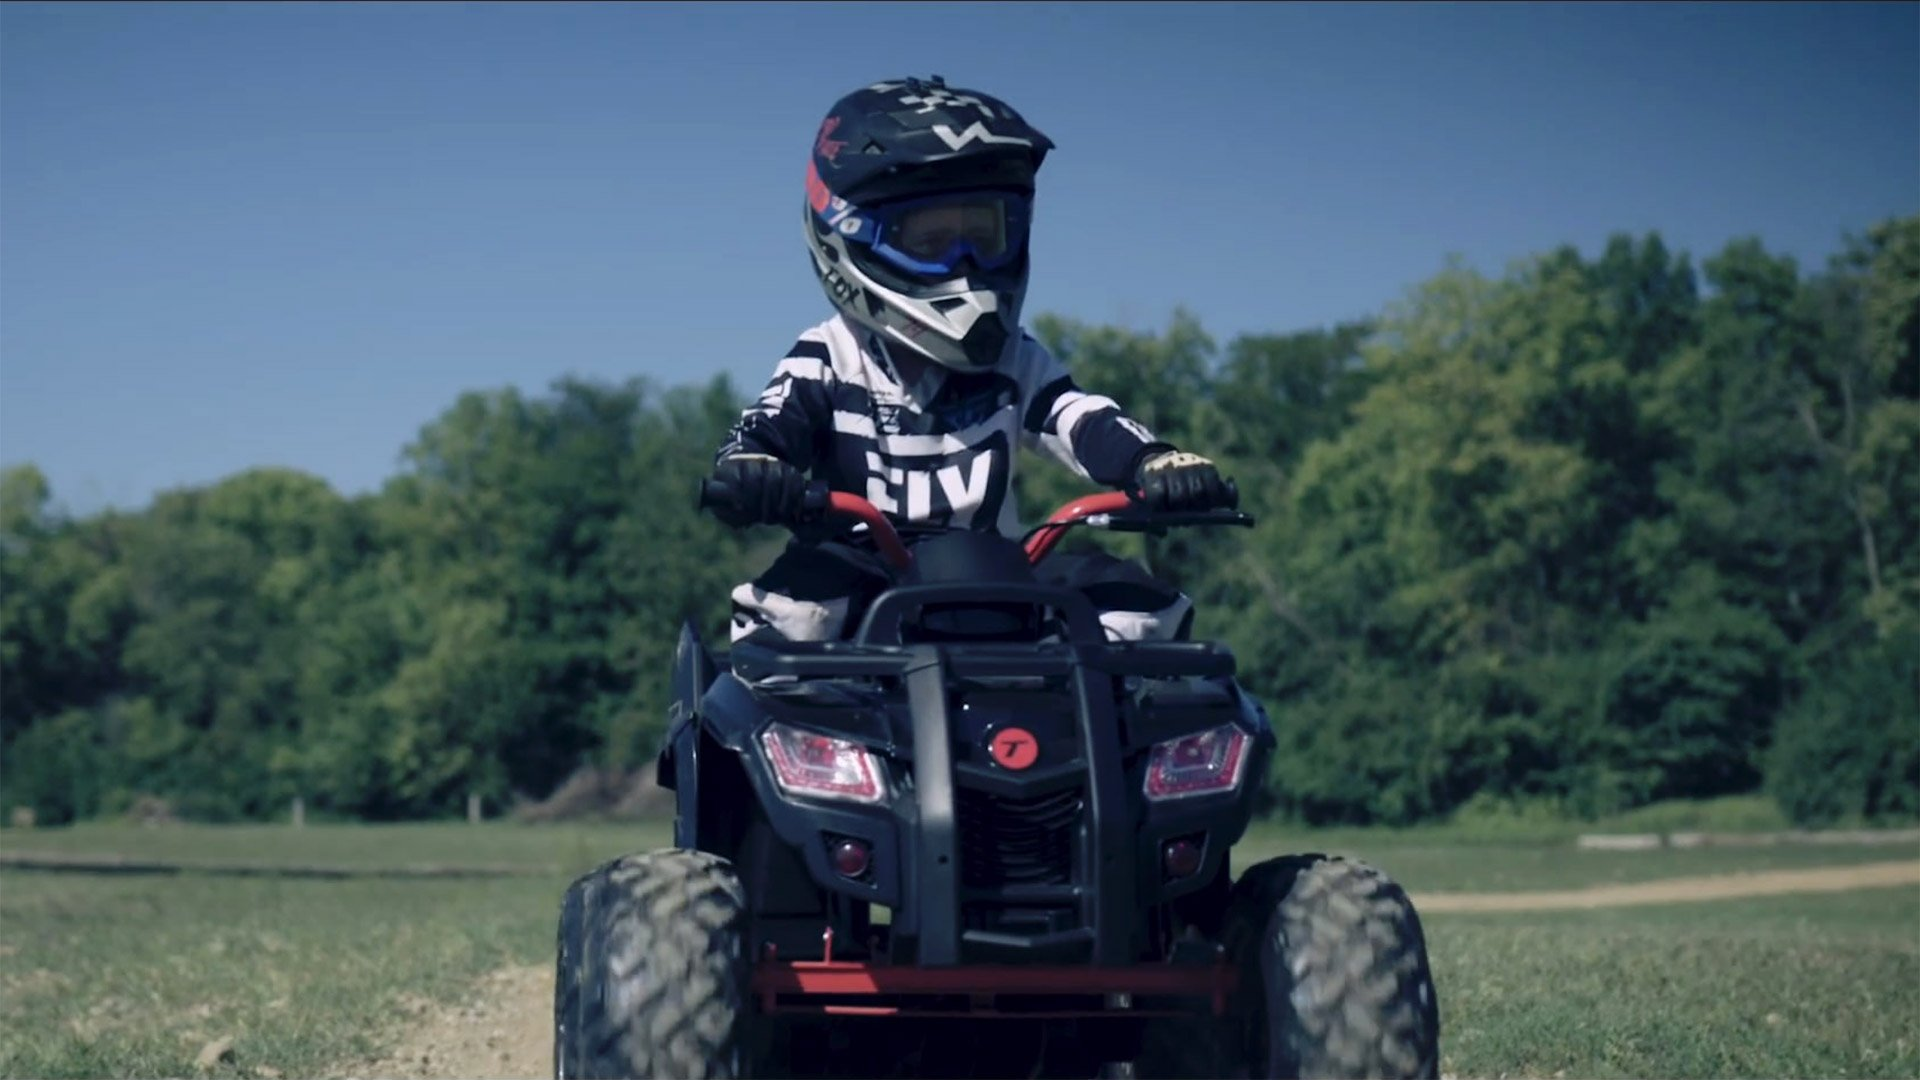 Torex ATV Huffy Video Cover